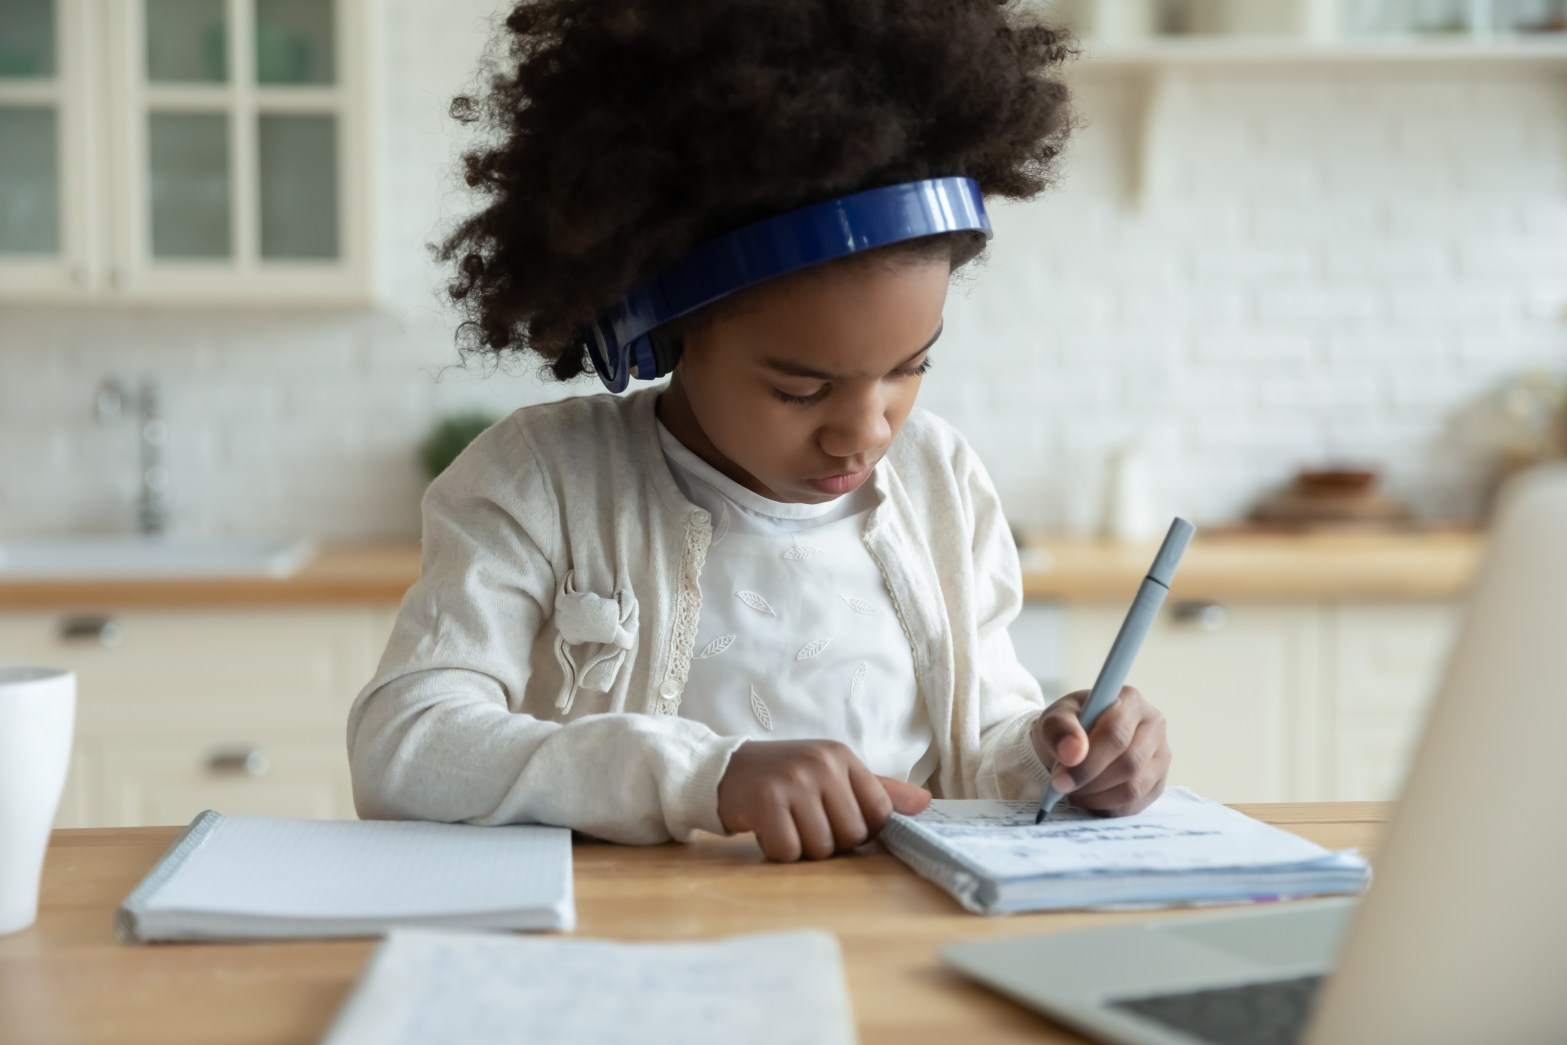 Image of child remote learning with headphones on in front of a laptop, courtesy of Shutterstock.